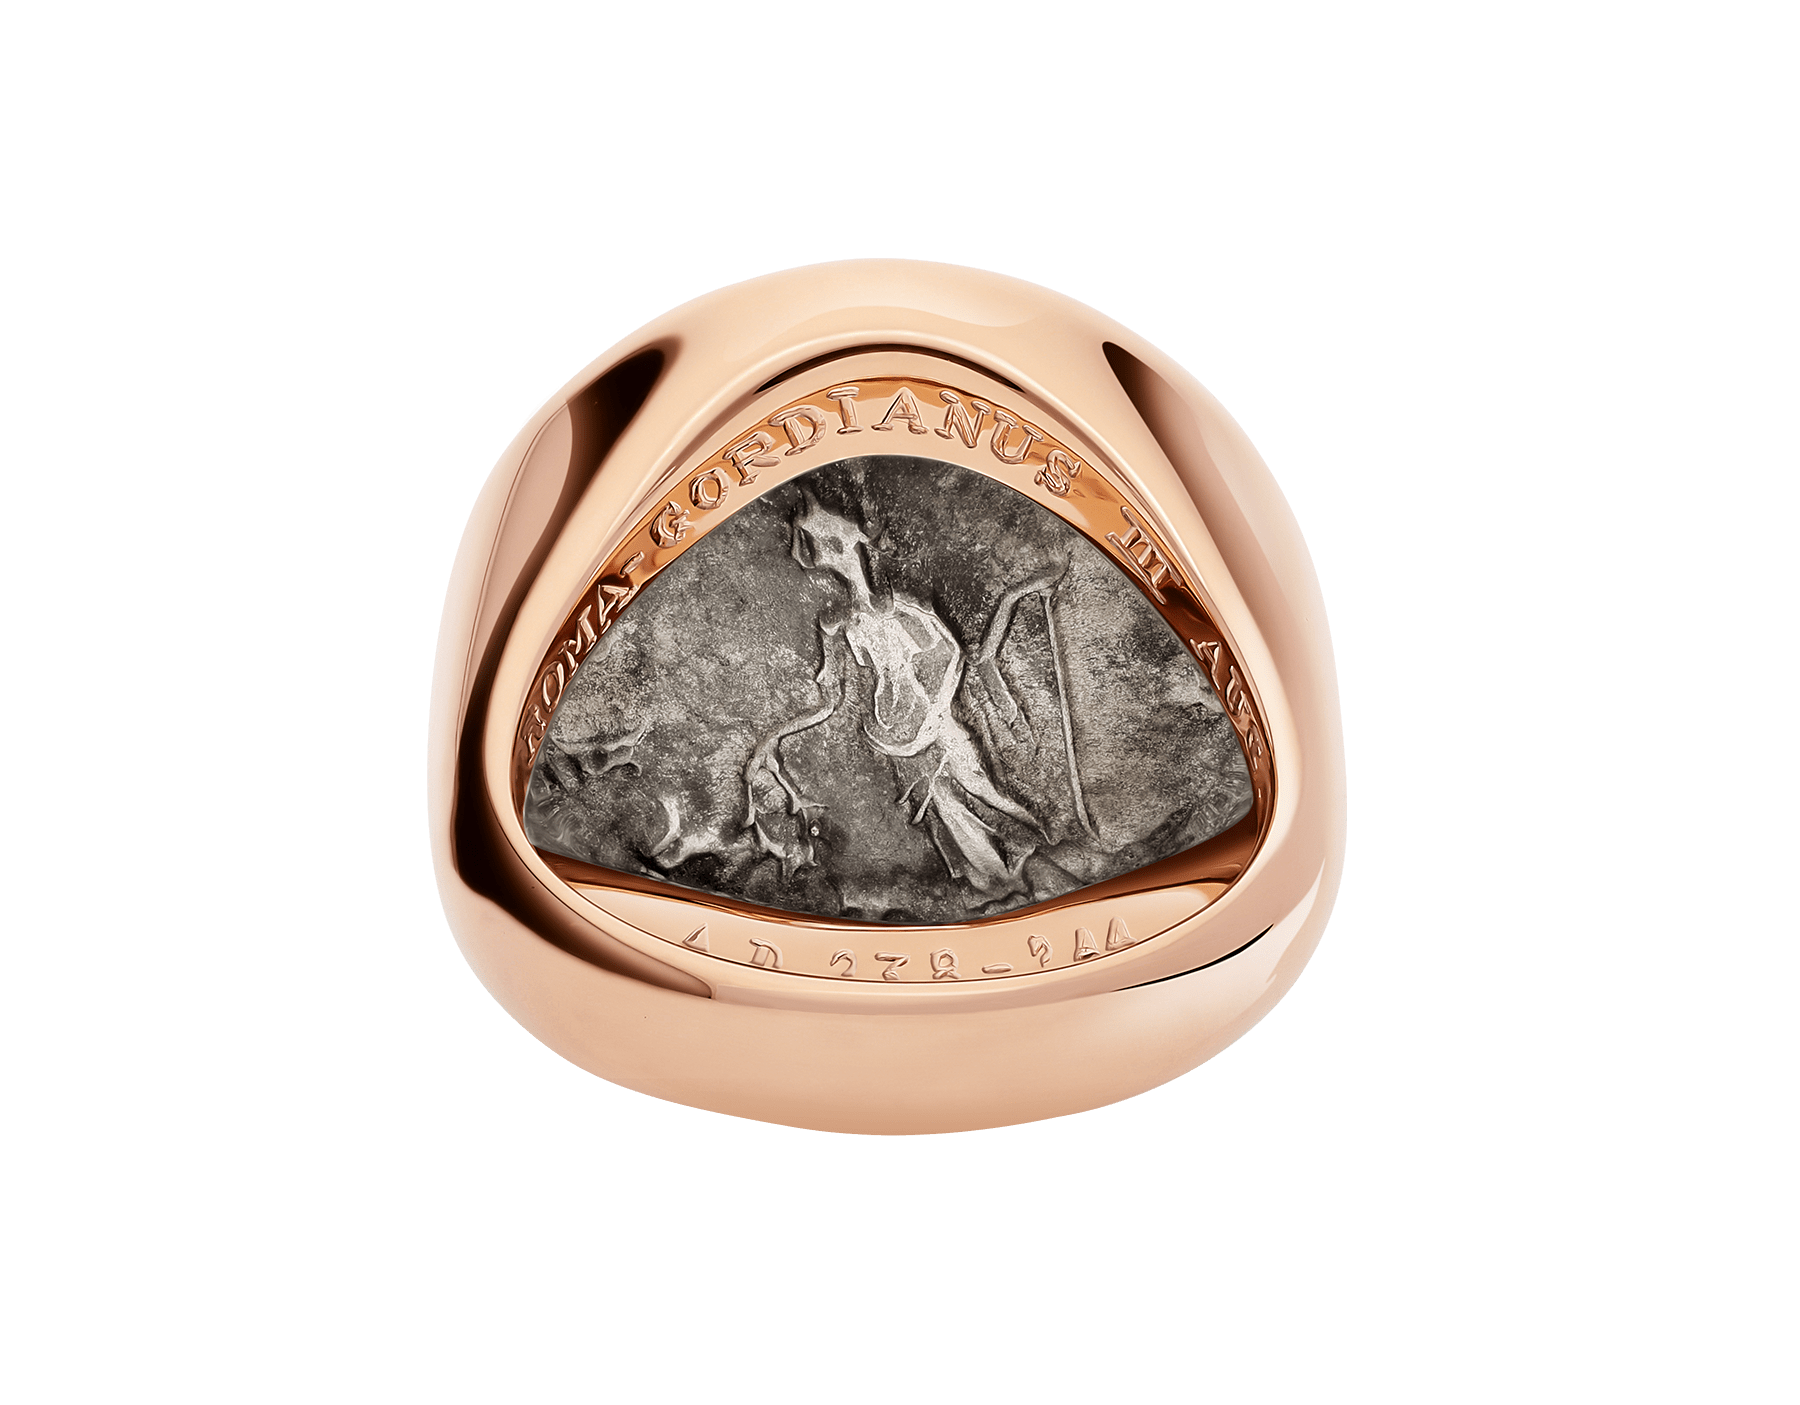 Monete 18 kt rose gold ring set with antique bronze or silver coin AN856864 image 4